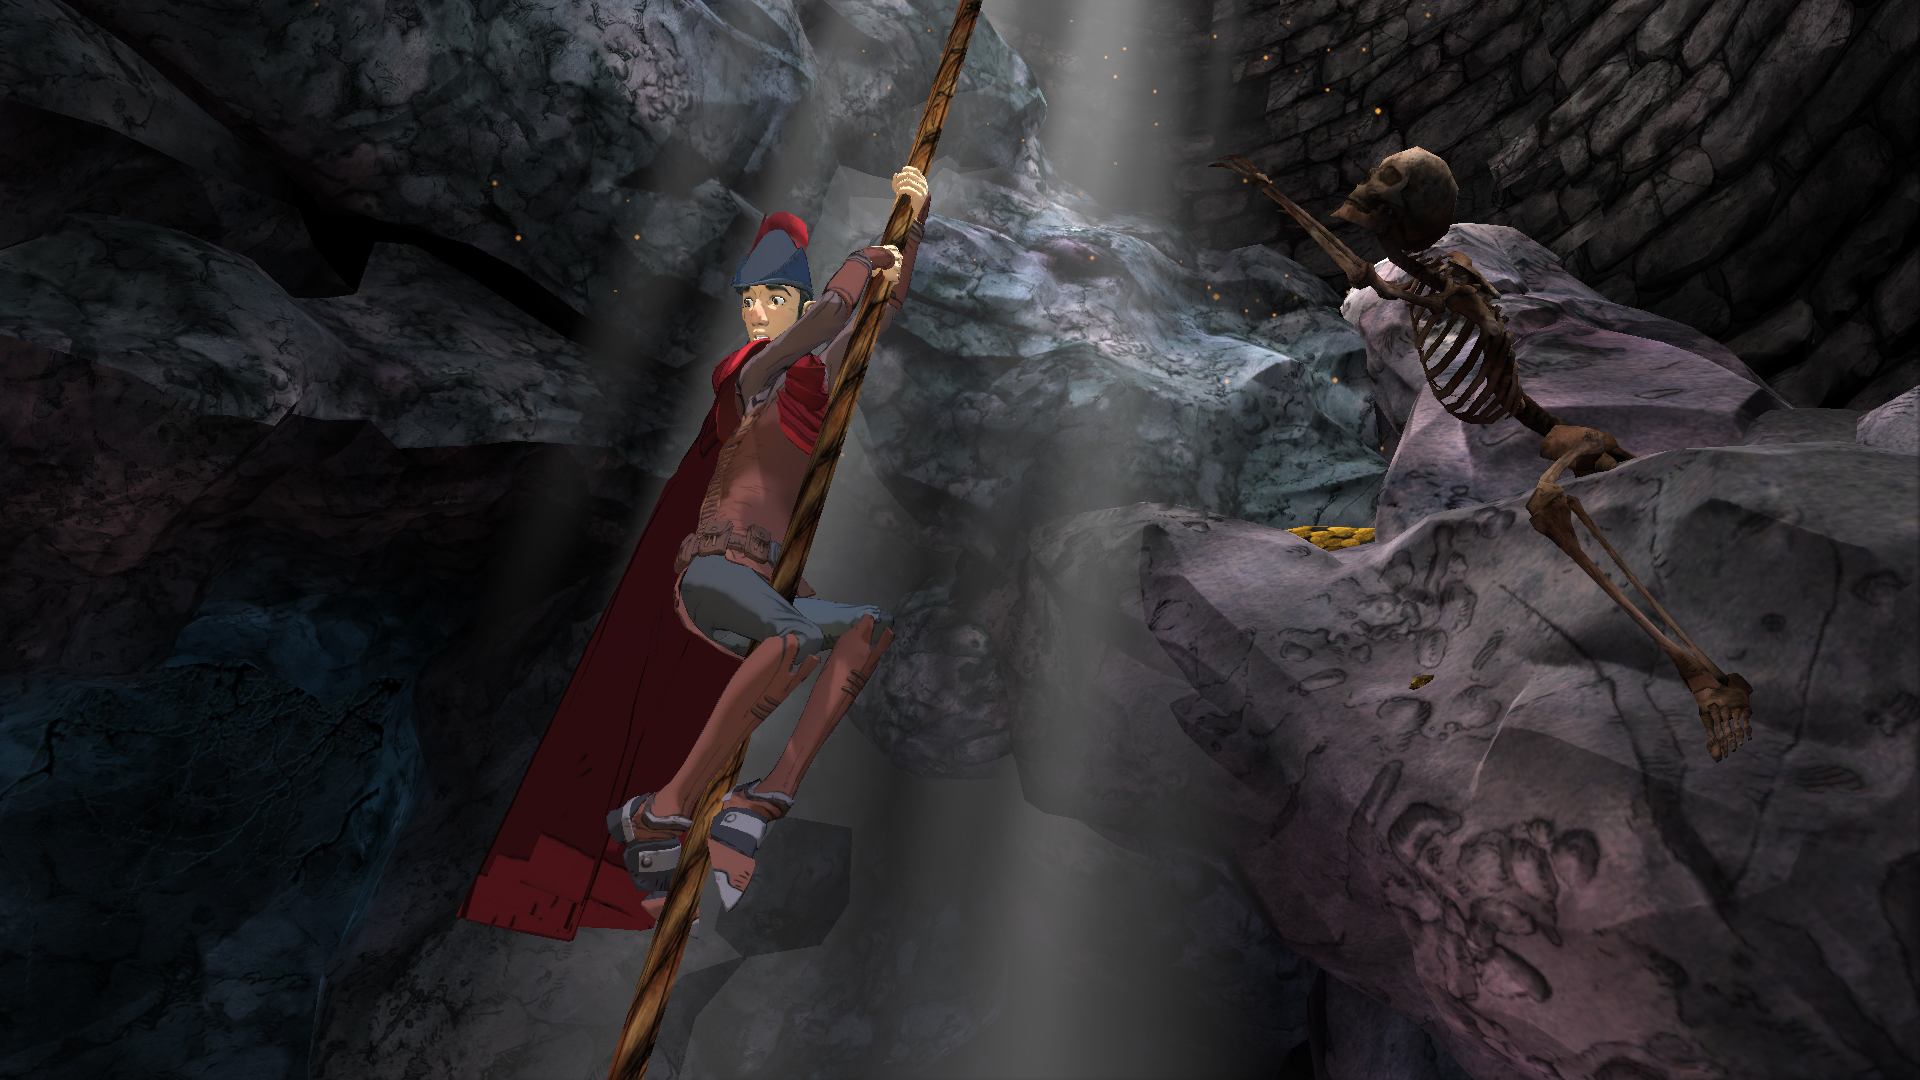 The new King s Quest is a beautiful love letter to the original